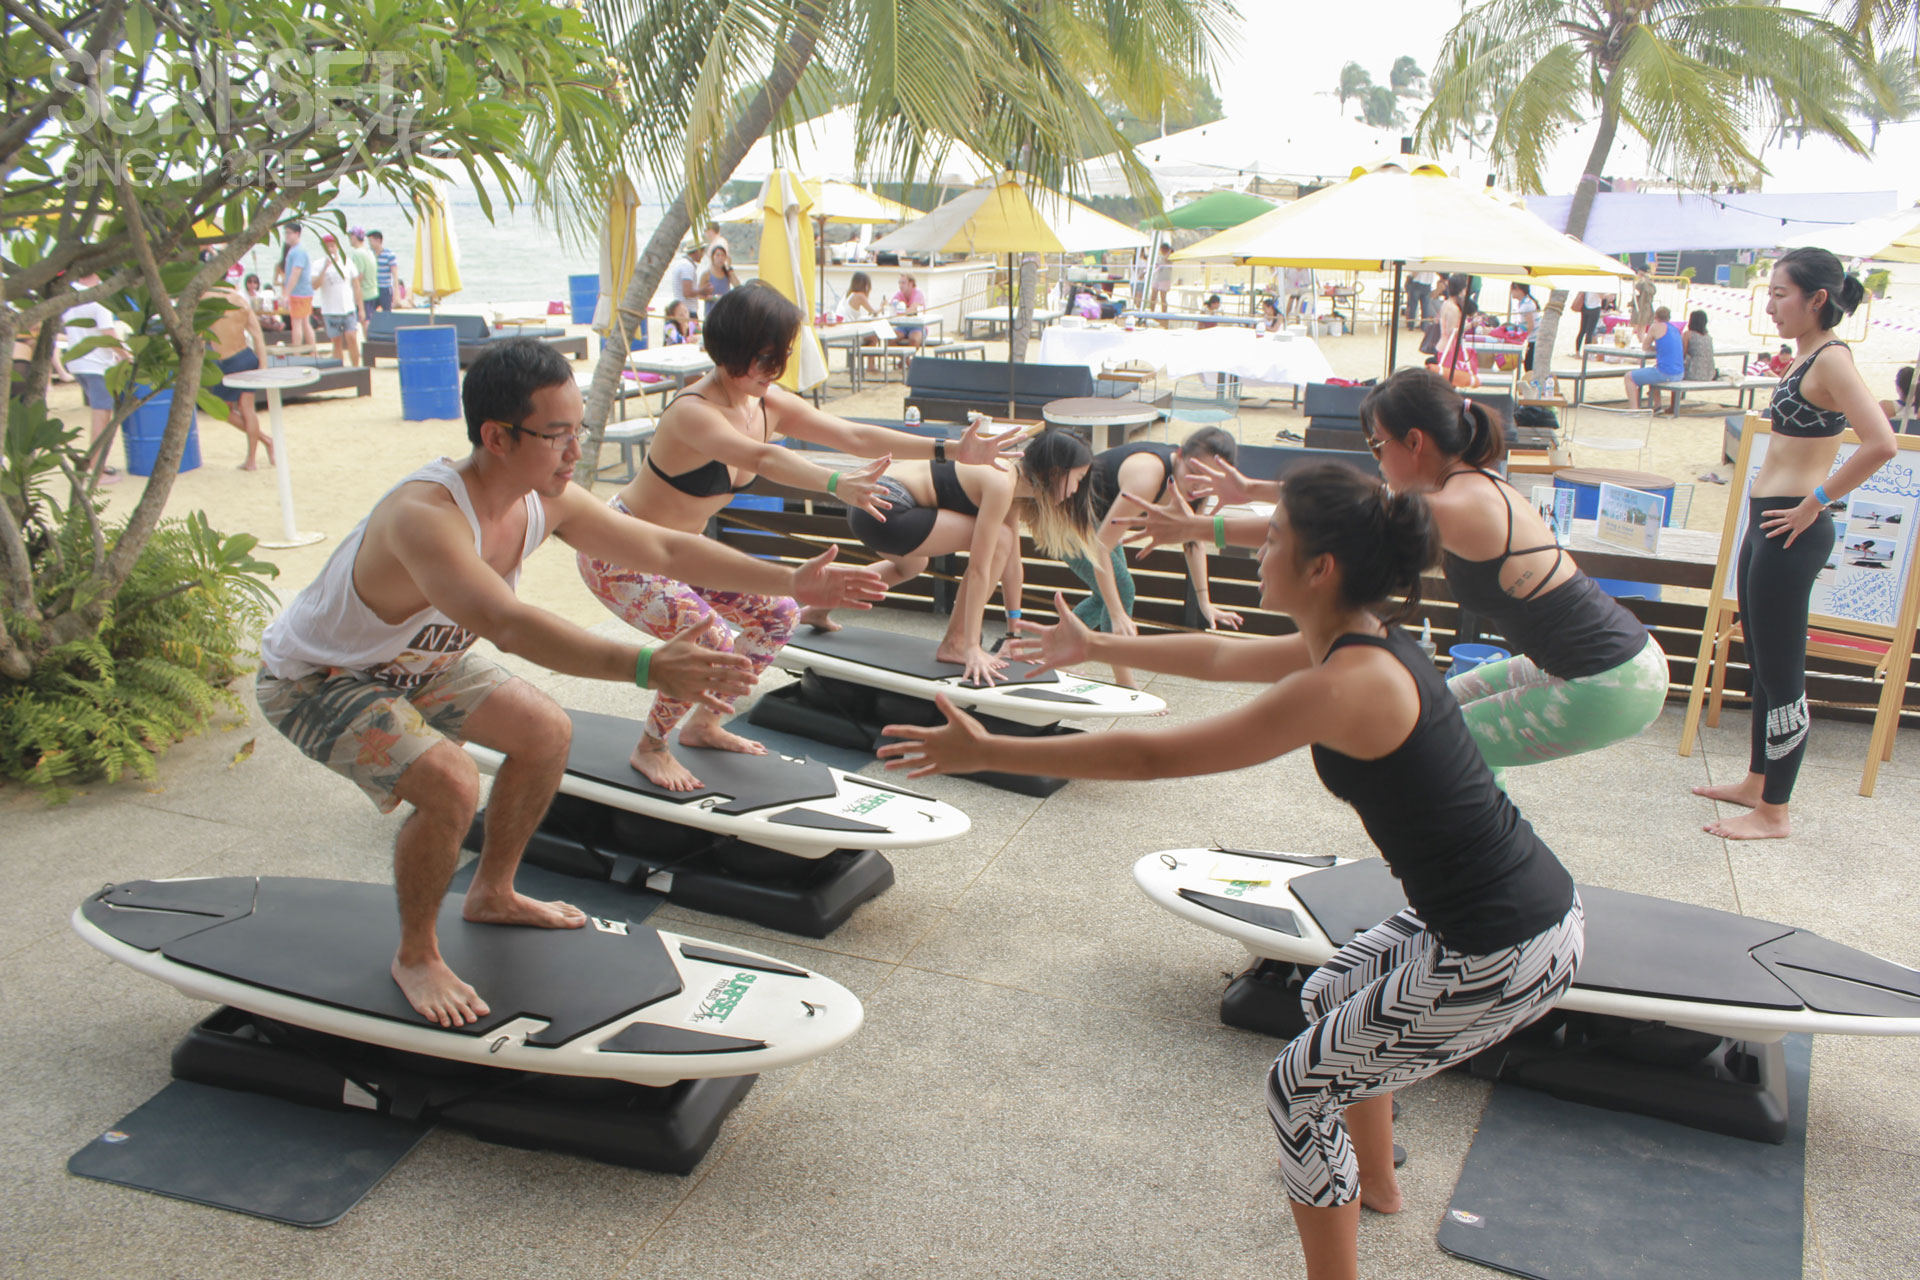 Participants having fun with Surfset during Soulscape Yoga Event